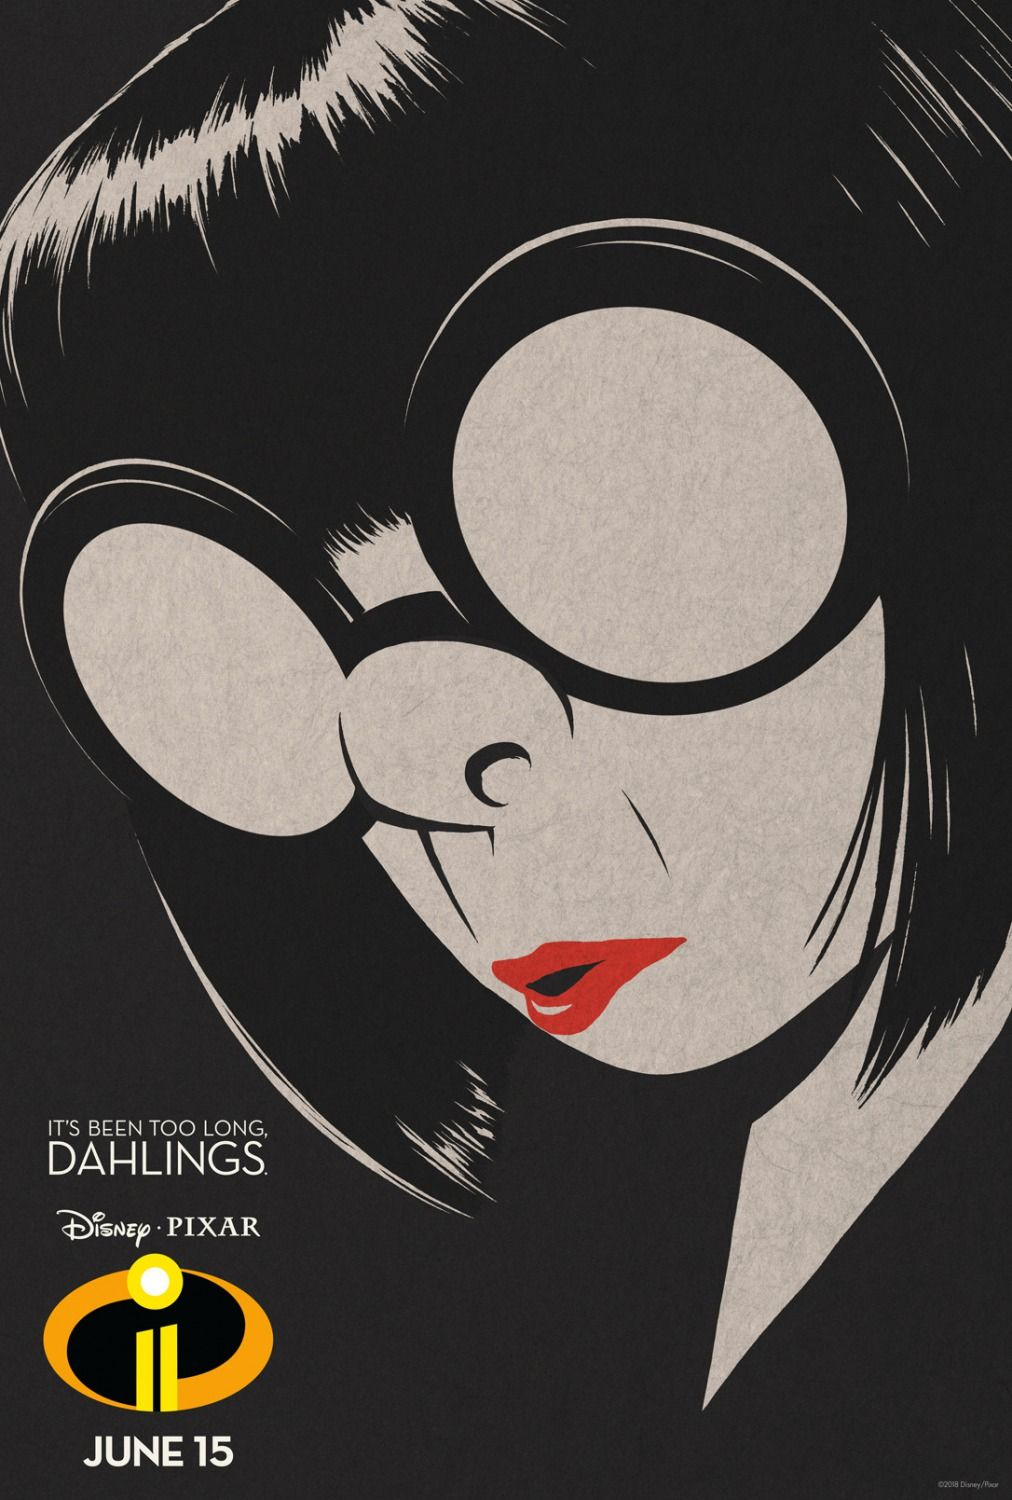 Incredibles 2 Edna Mode Disney Posters Movie Posters Design Movie Posters